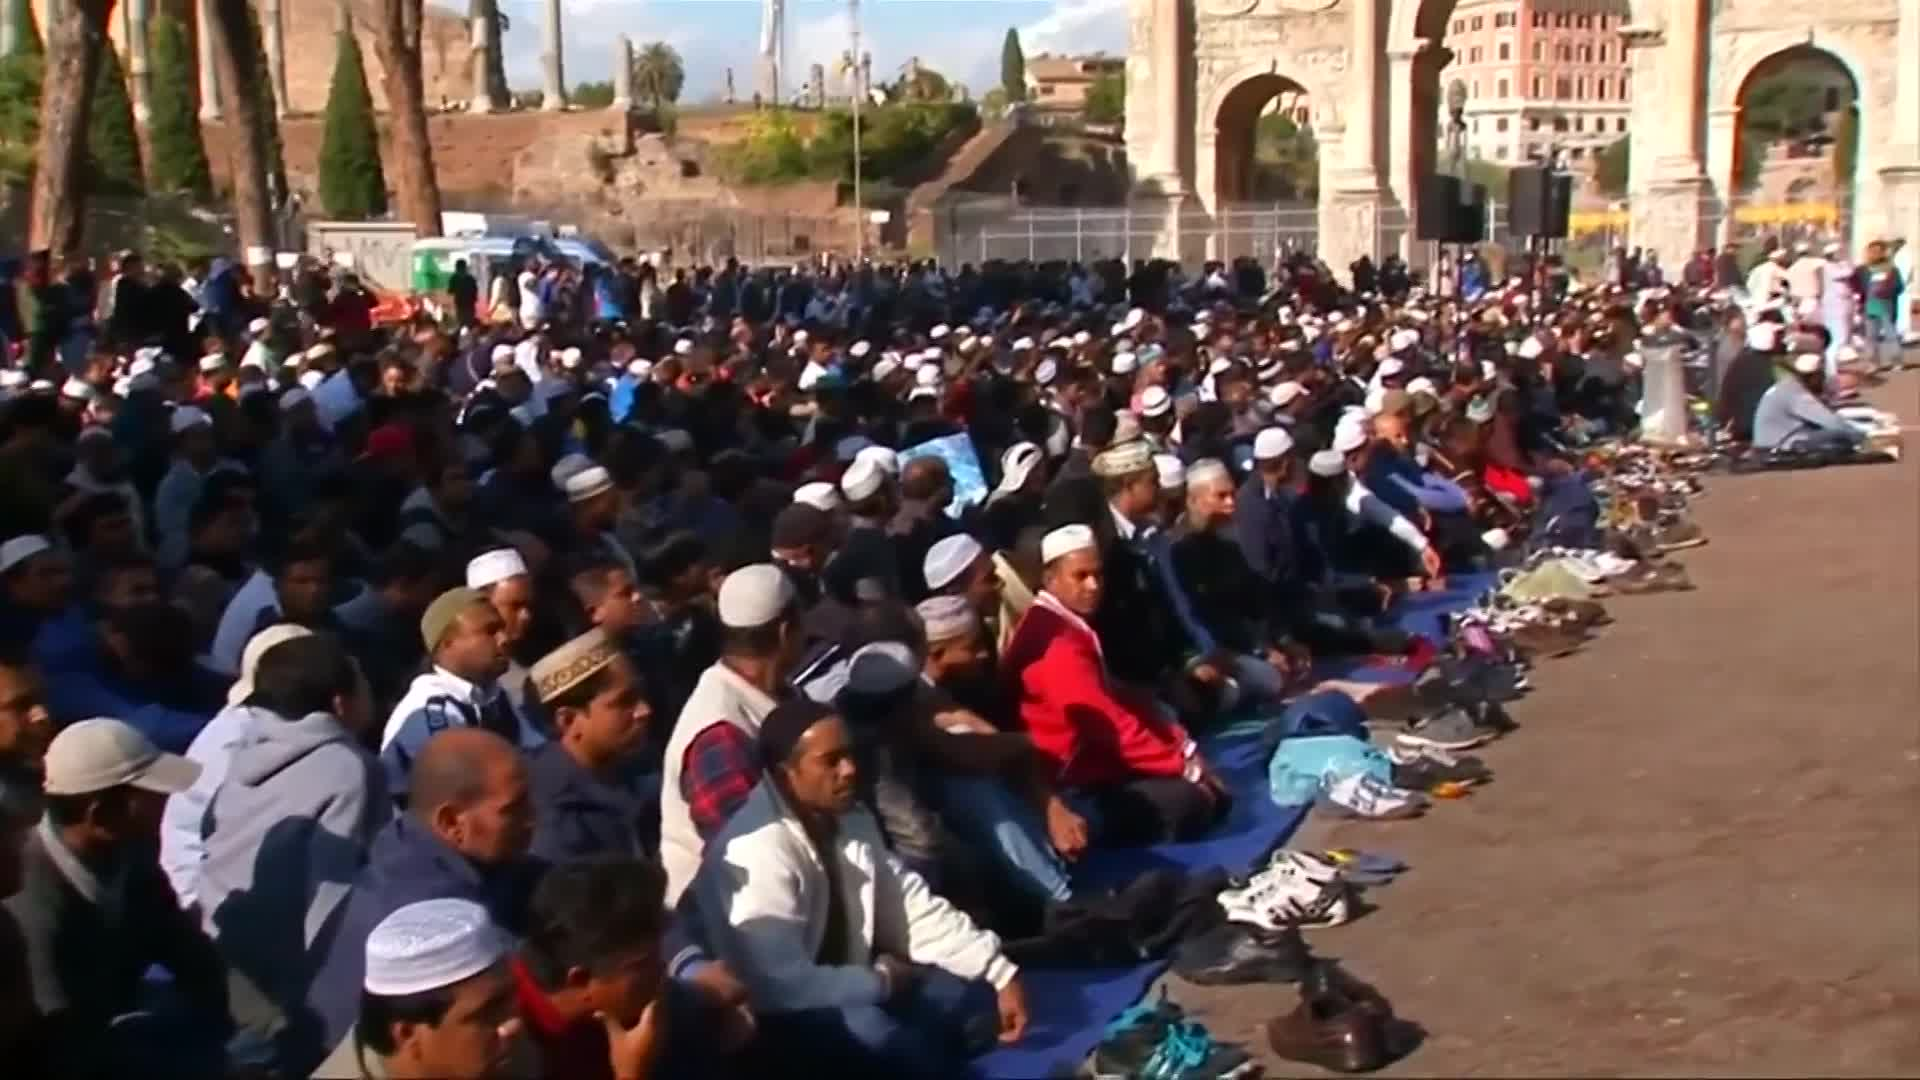 Muslims in Rome protest mosque closures